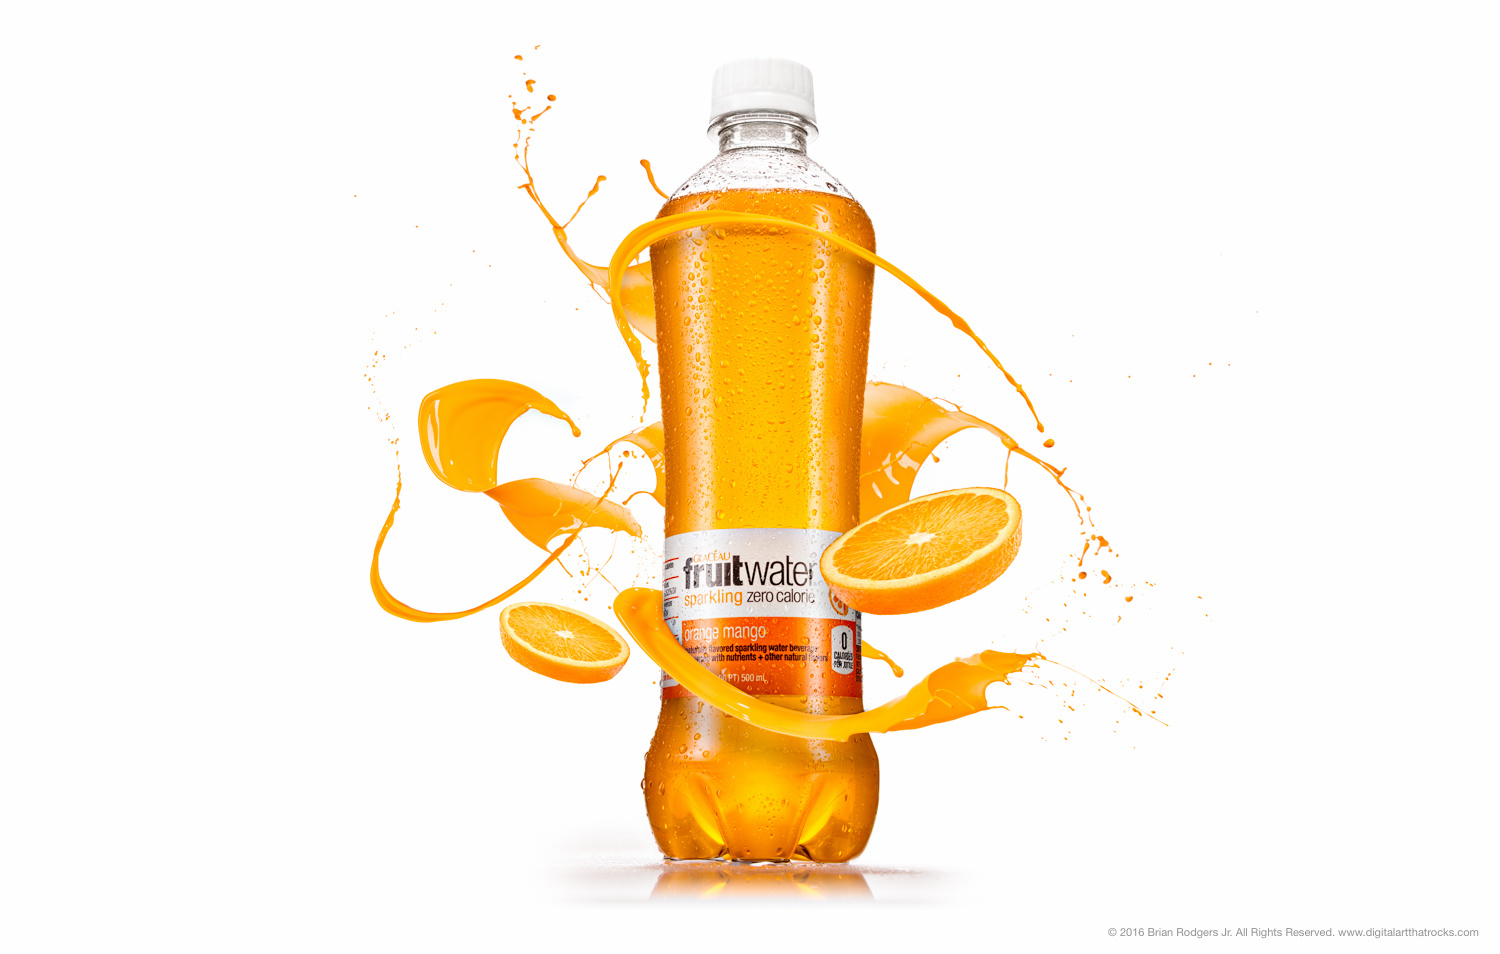 Refreshingly Orange by Brian Rodgers Jr.